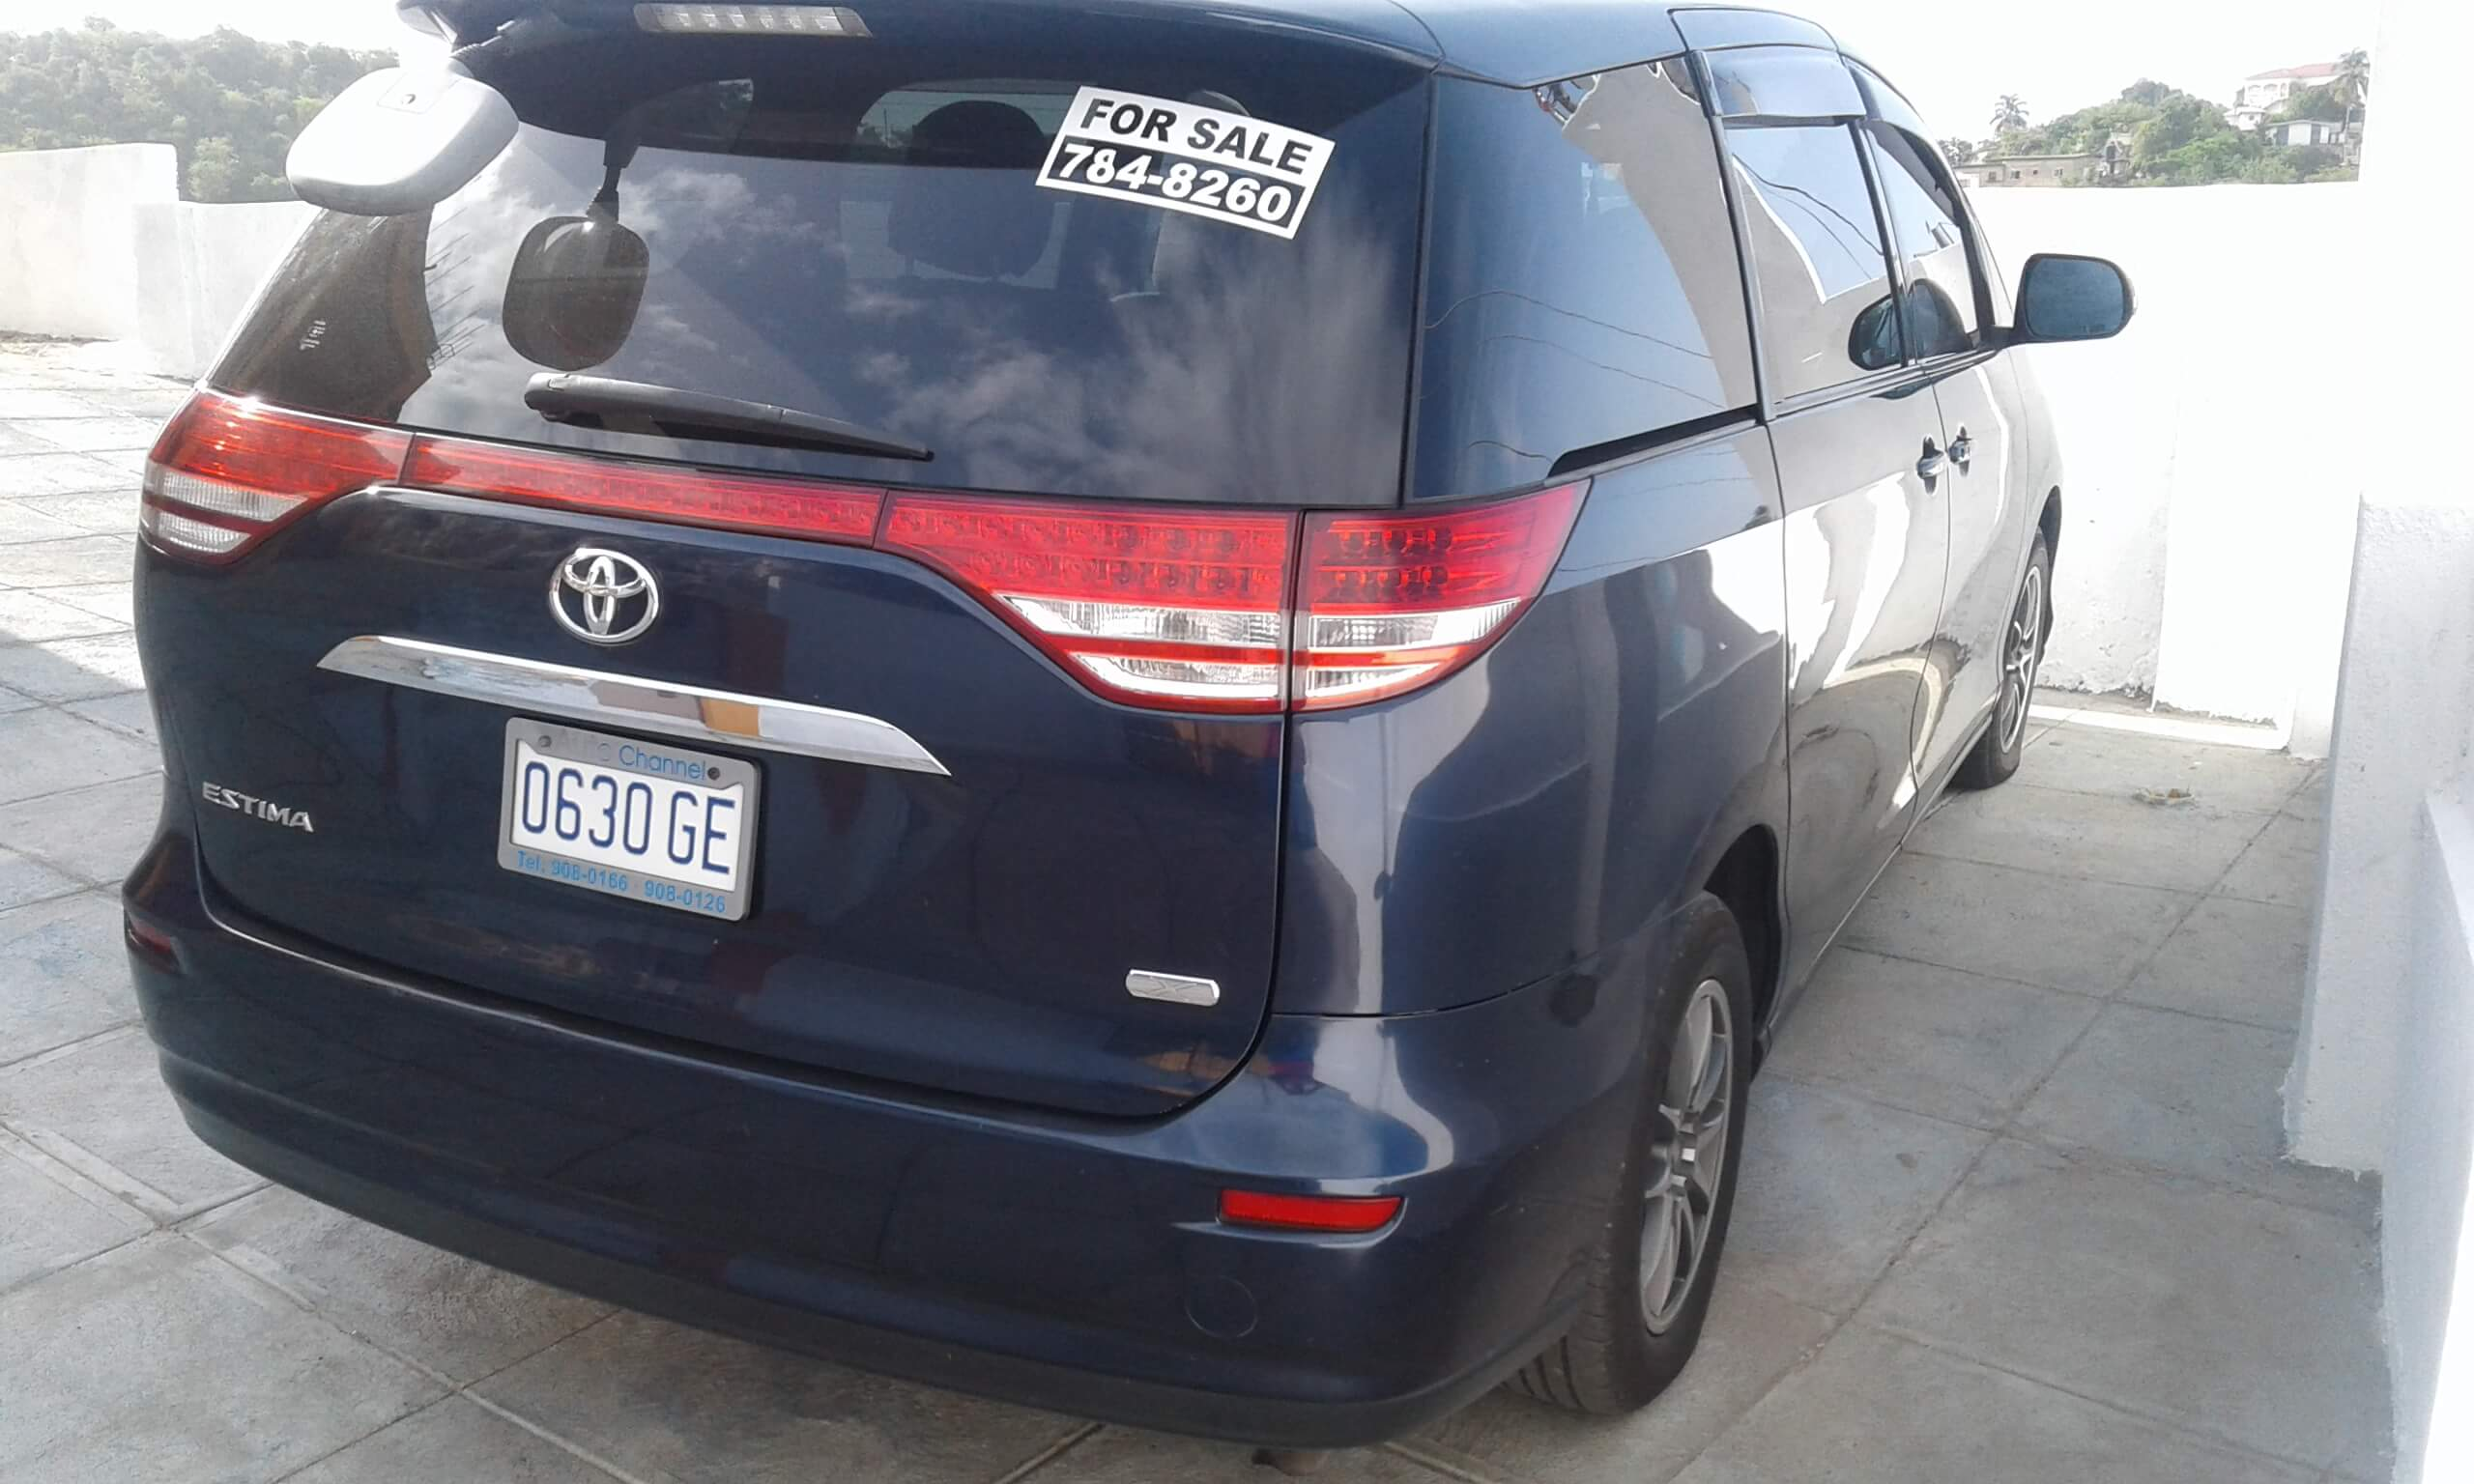 Cars For Sale I Jamaica: 7 Seater Vehicles For Sale In Jamaica